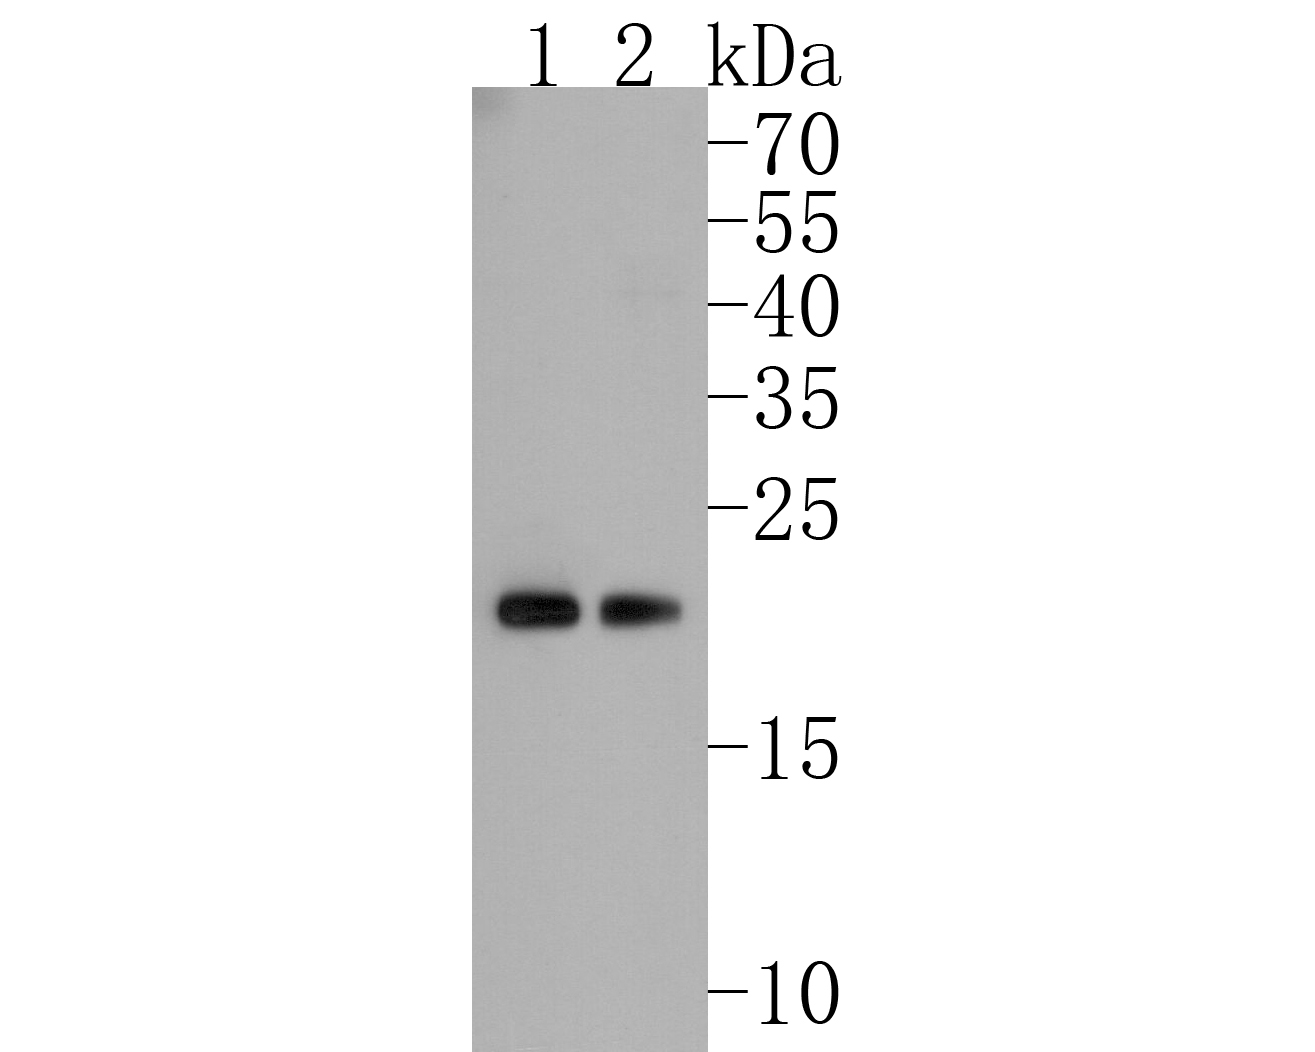 Western blot analysis of Rac1-2-3 on different lysates. Proteins were transferred to a PVDF membrane and blocked with 5% BSA in PBS for 1 hour at room temperature. The primary antibody (ET1703-80, 1/500) was used in 5% BSA at room temperature for 2 hours. Goat Anti-Rabbit IgG - HRP Secondary Antibody (HA1001) at 1:5,000 dilution was used for 1 hour at room temperature.<br /> Positive control: <br /> Lane 1: MCF-7 cell lysate<br /> Lane 2: PC-12 cell lysate